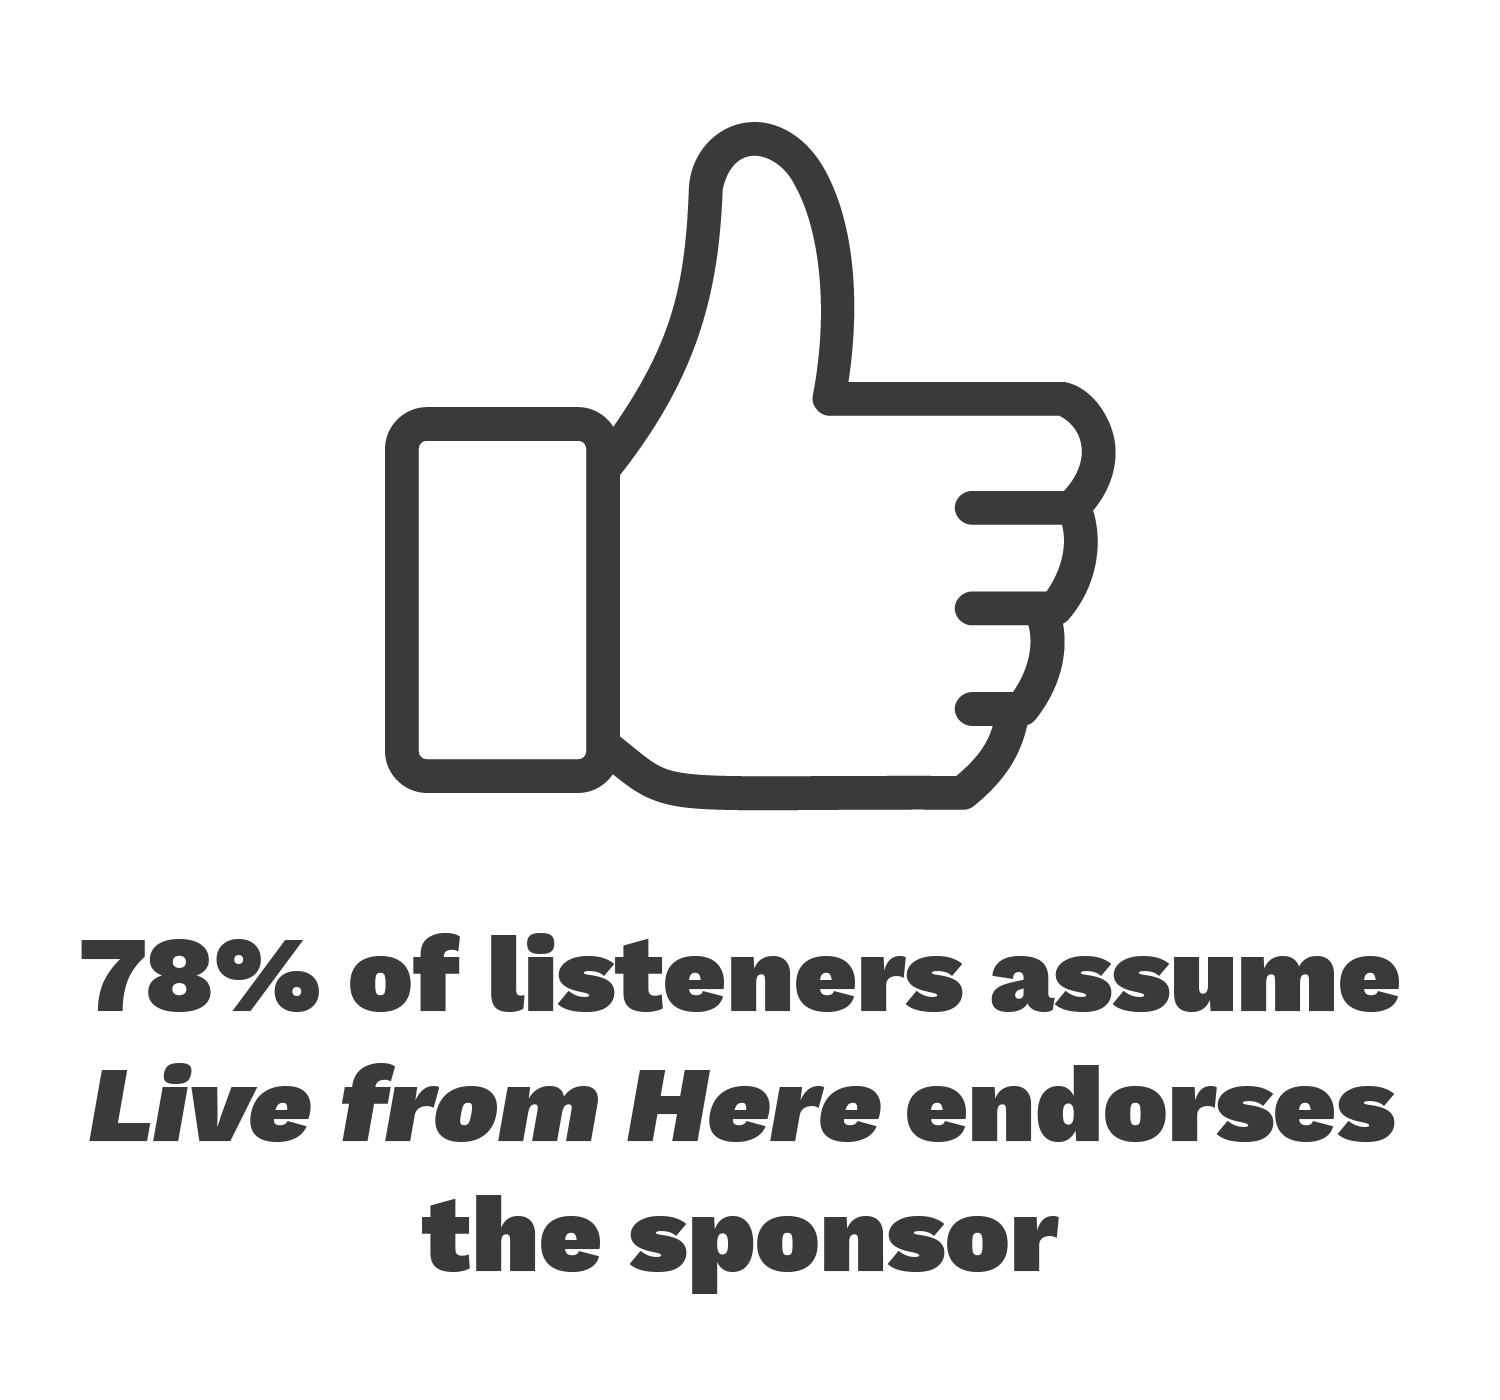 78% of listeners assume Live from Here endorses the sponsor